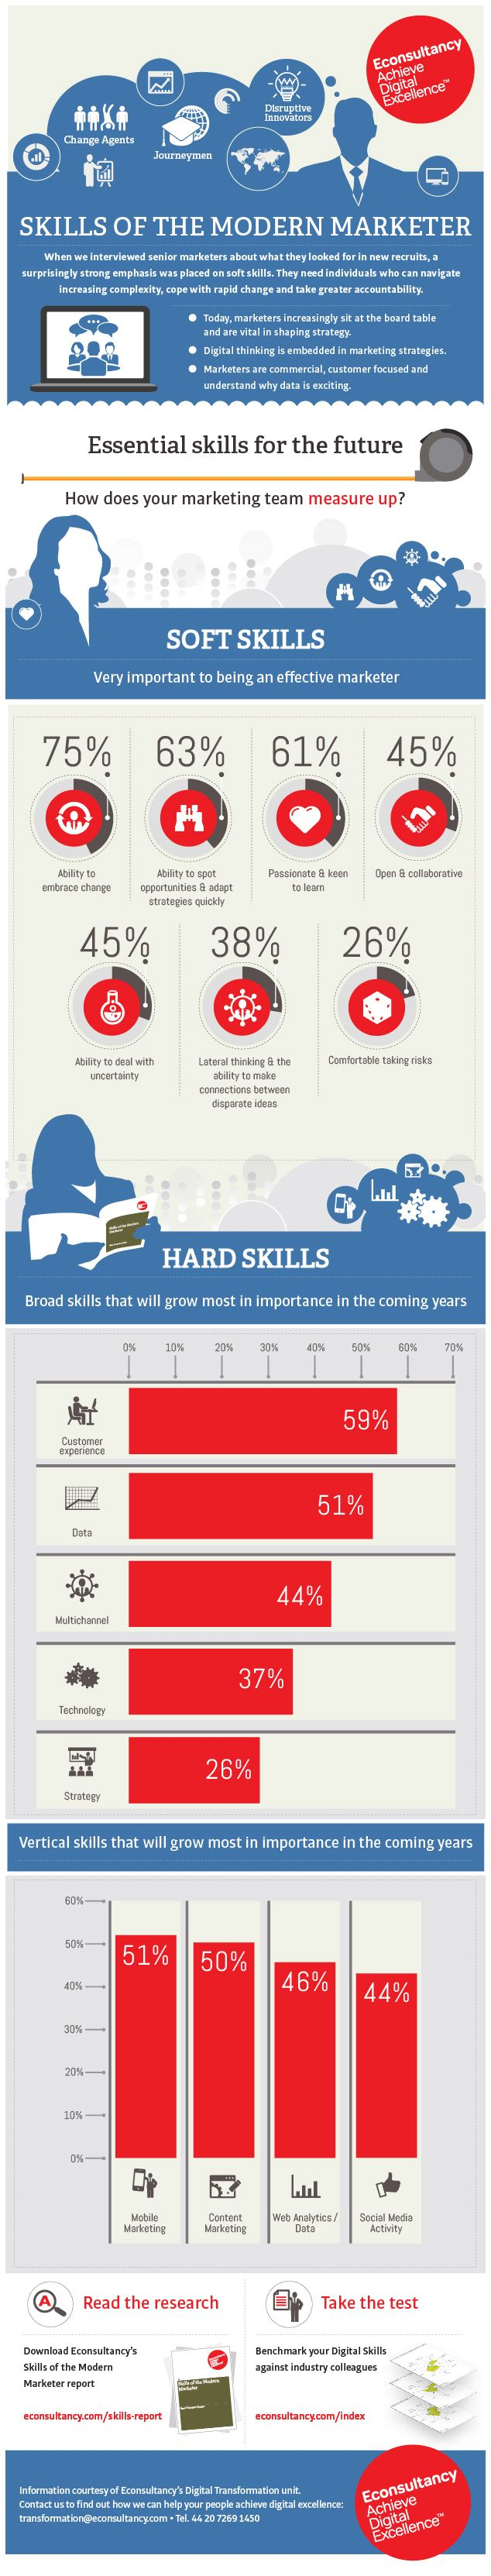 What are the essential skills for modern marketers? [infographic]